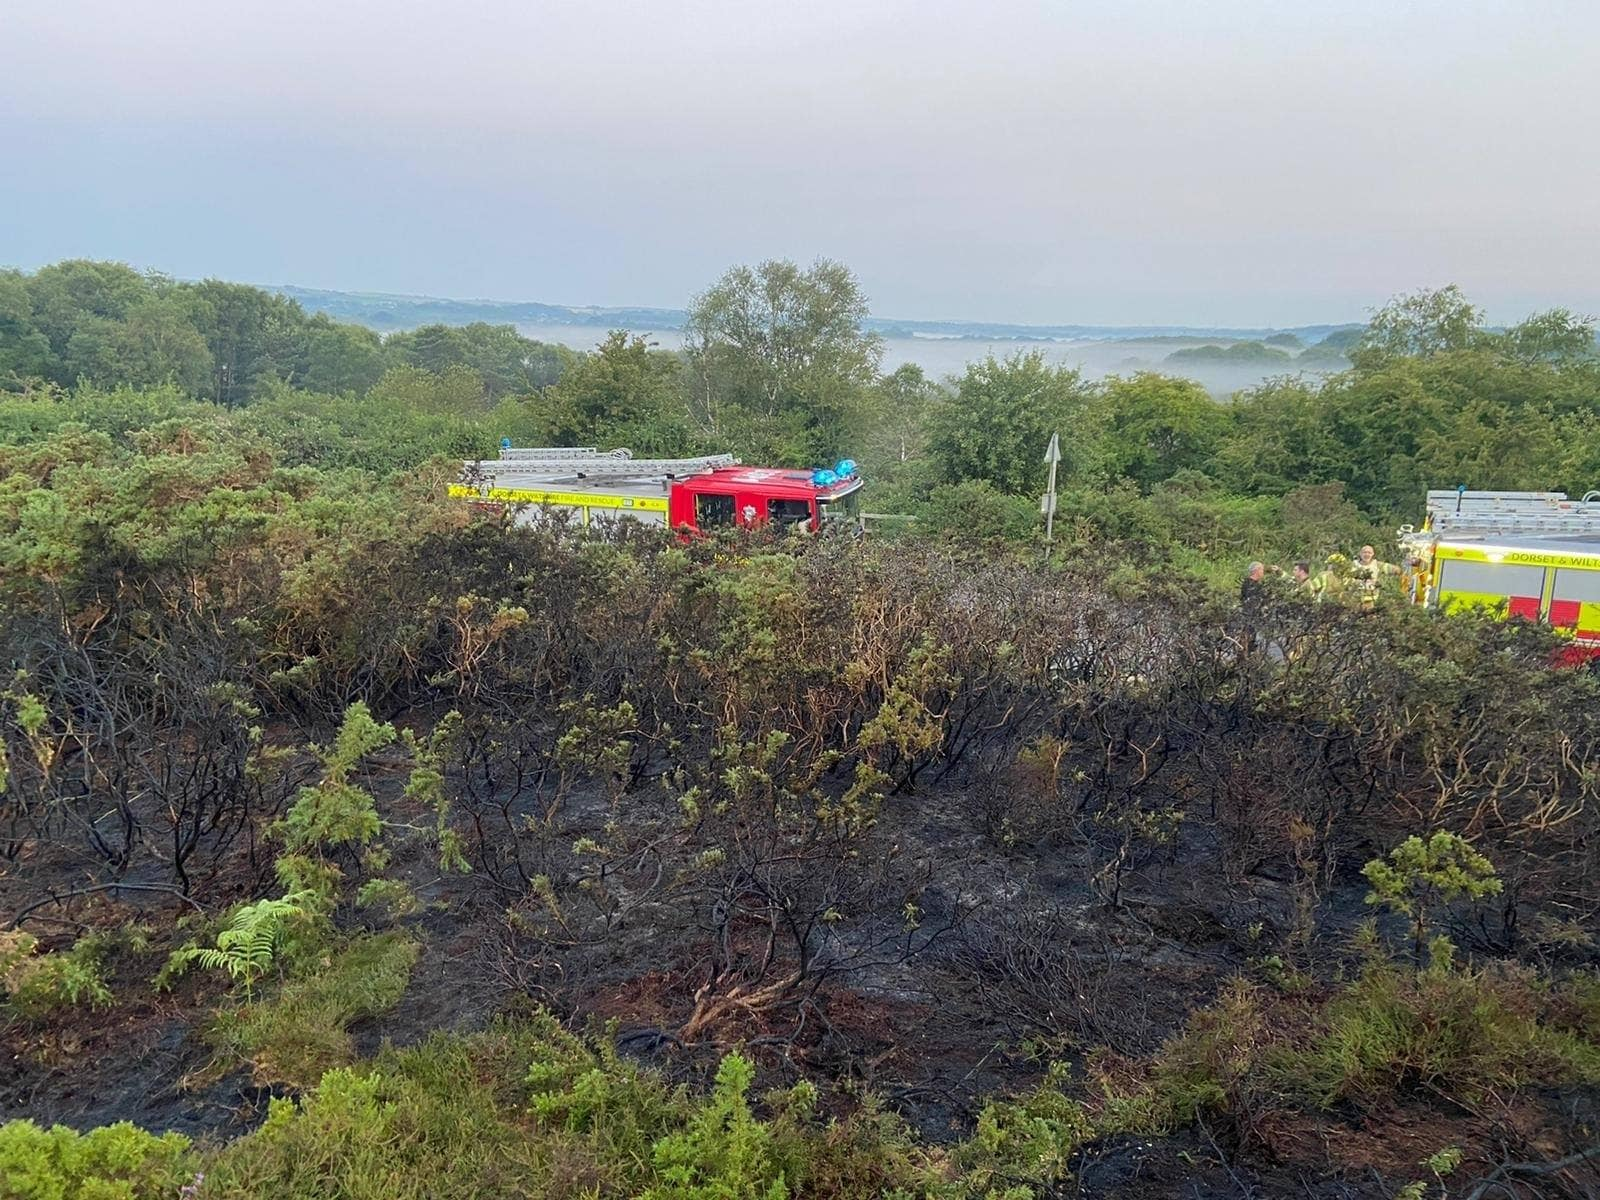 Fire engines and heathland fire